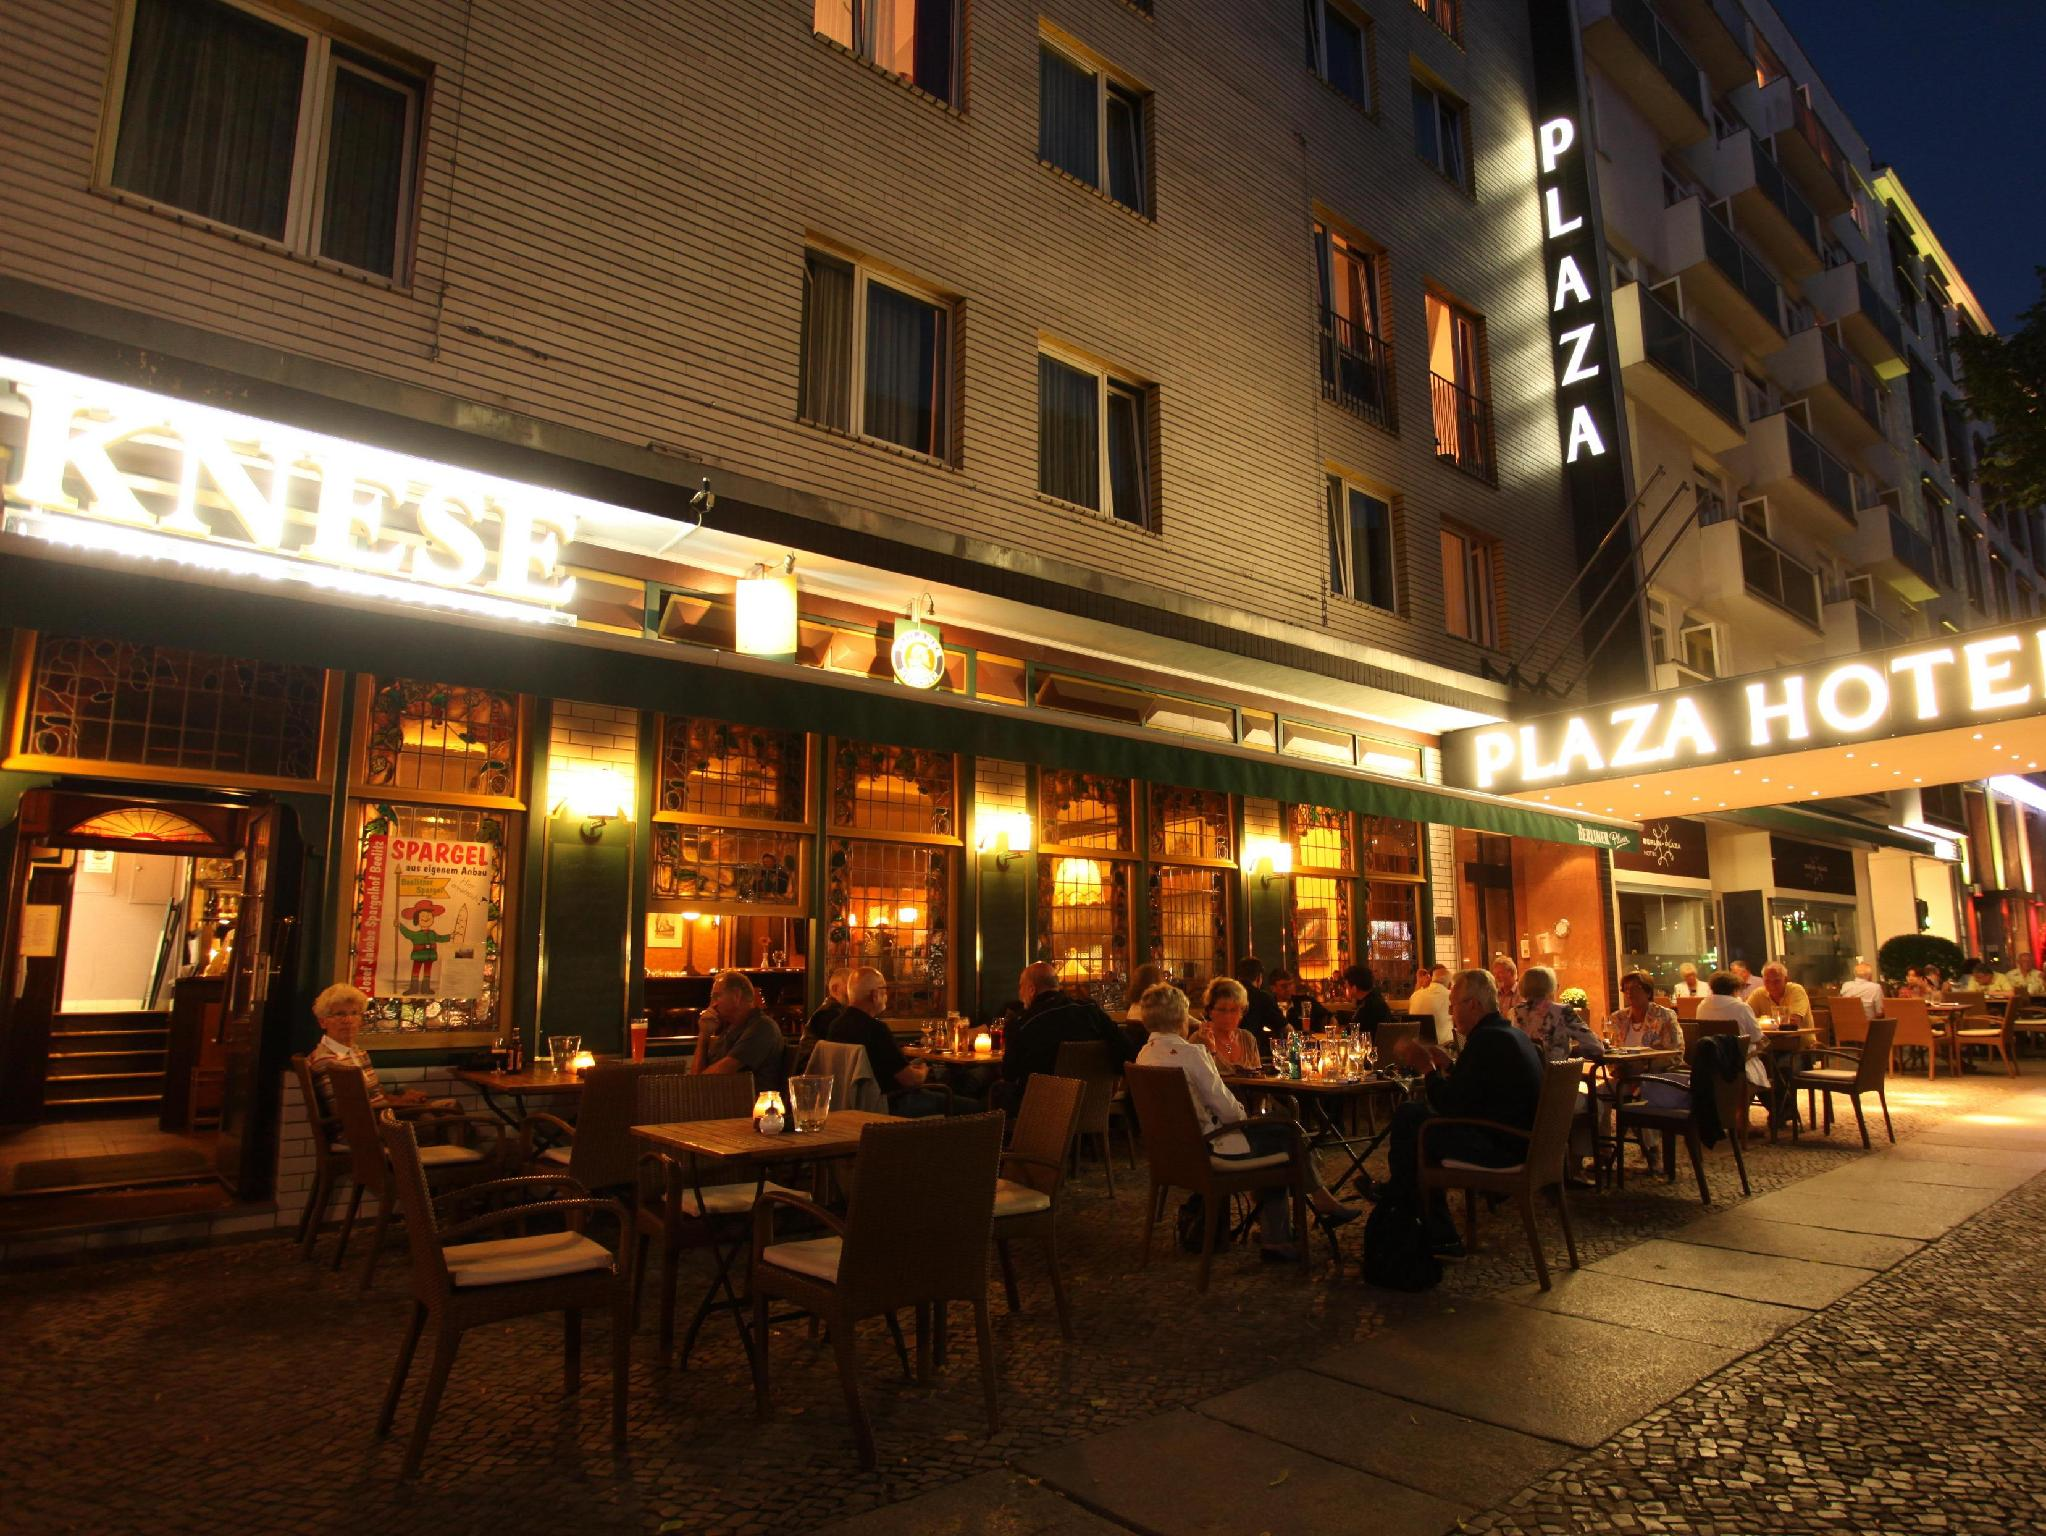 Berlin Plaza Hotel am Kurfurstendamm Βερολίνο